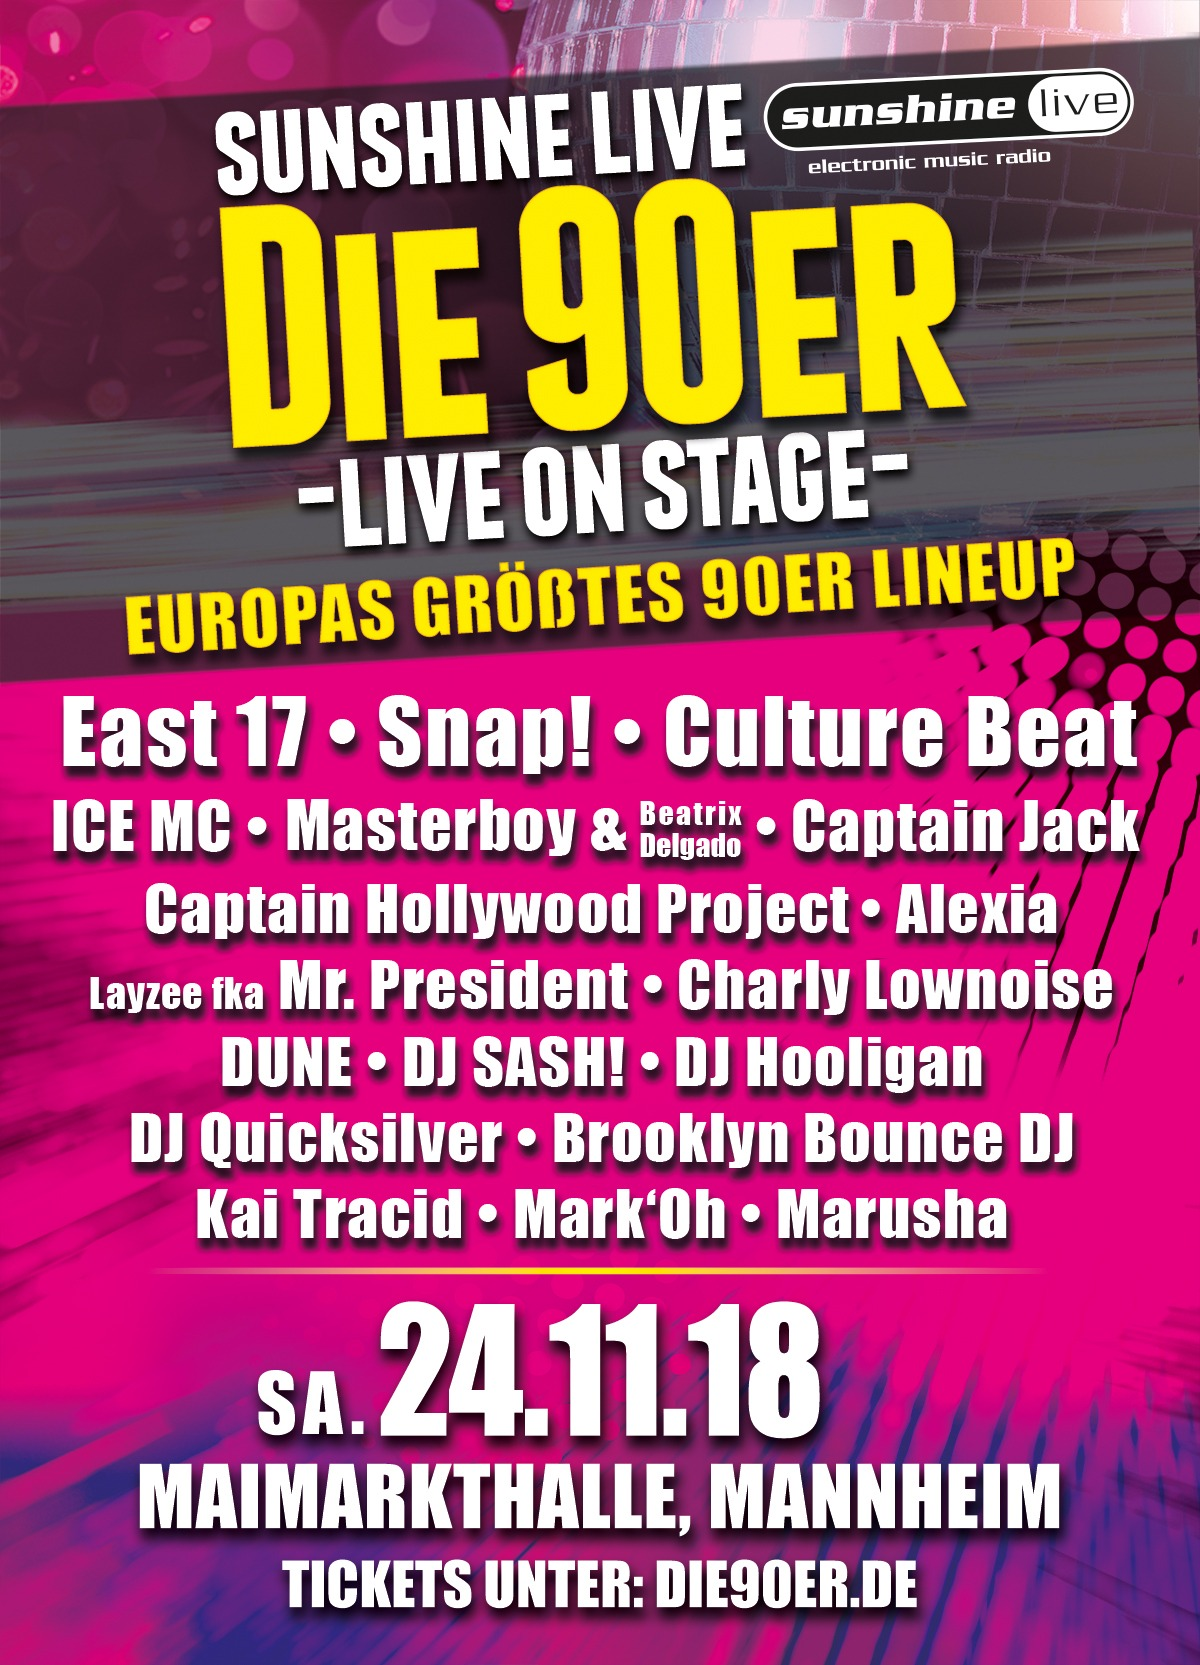 Sunshine Live Tickets gewinnen Die 90er Live on Stage